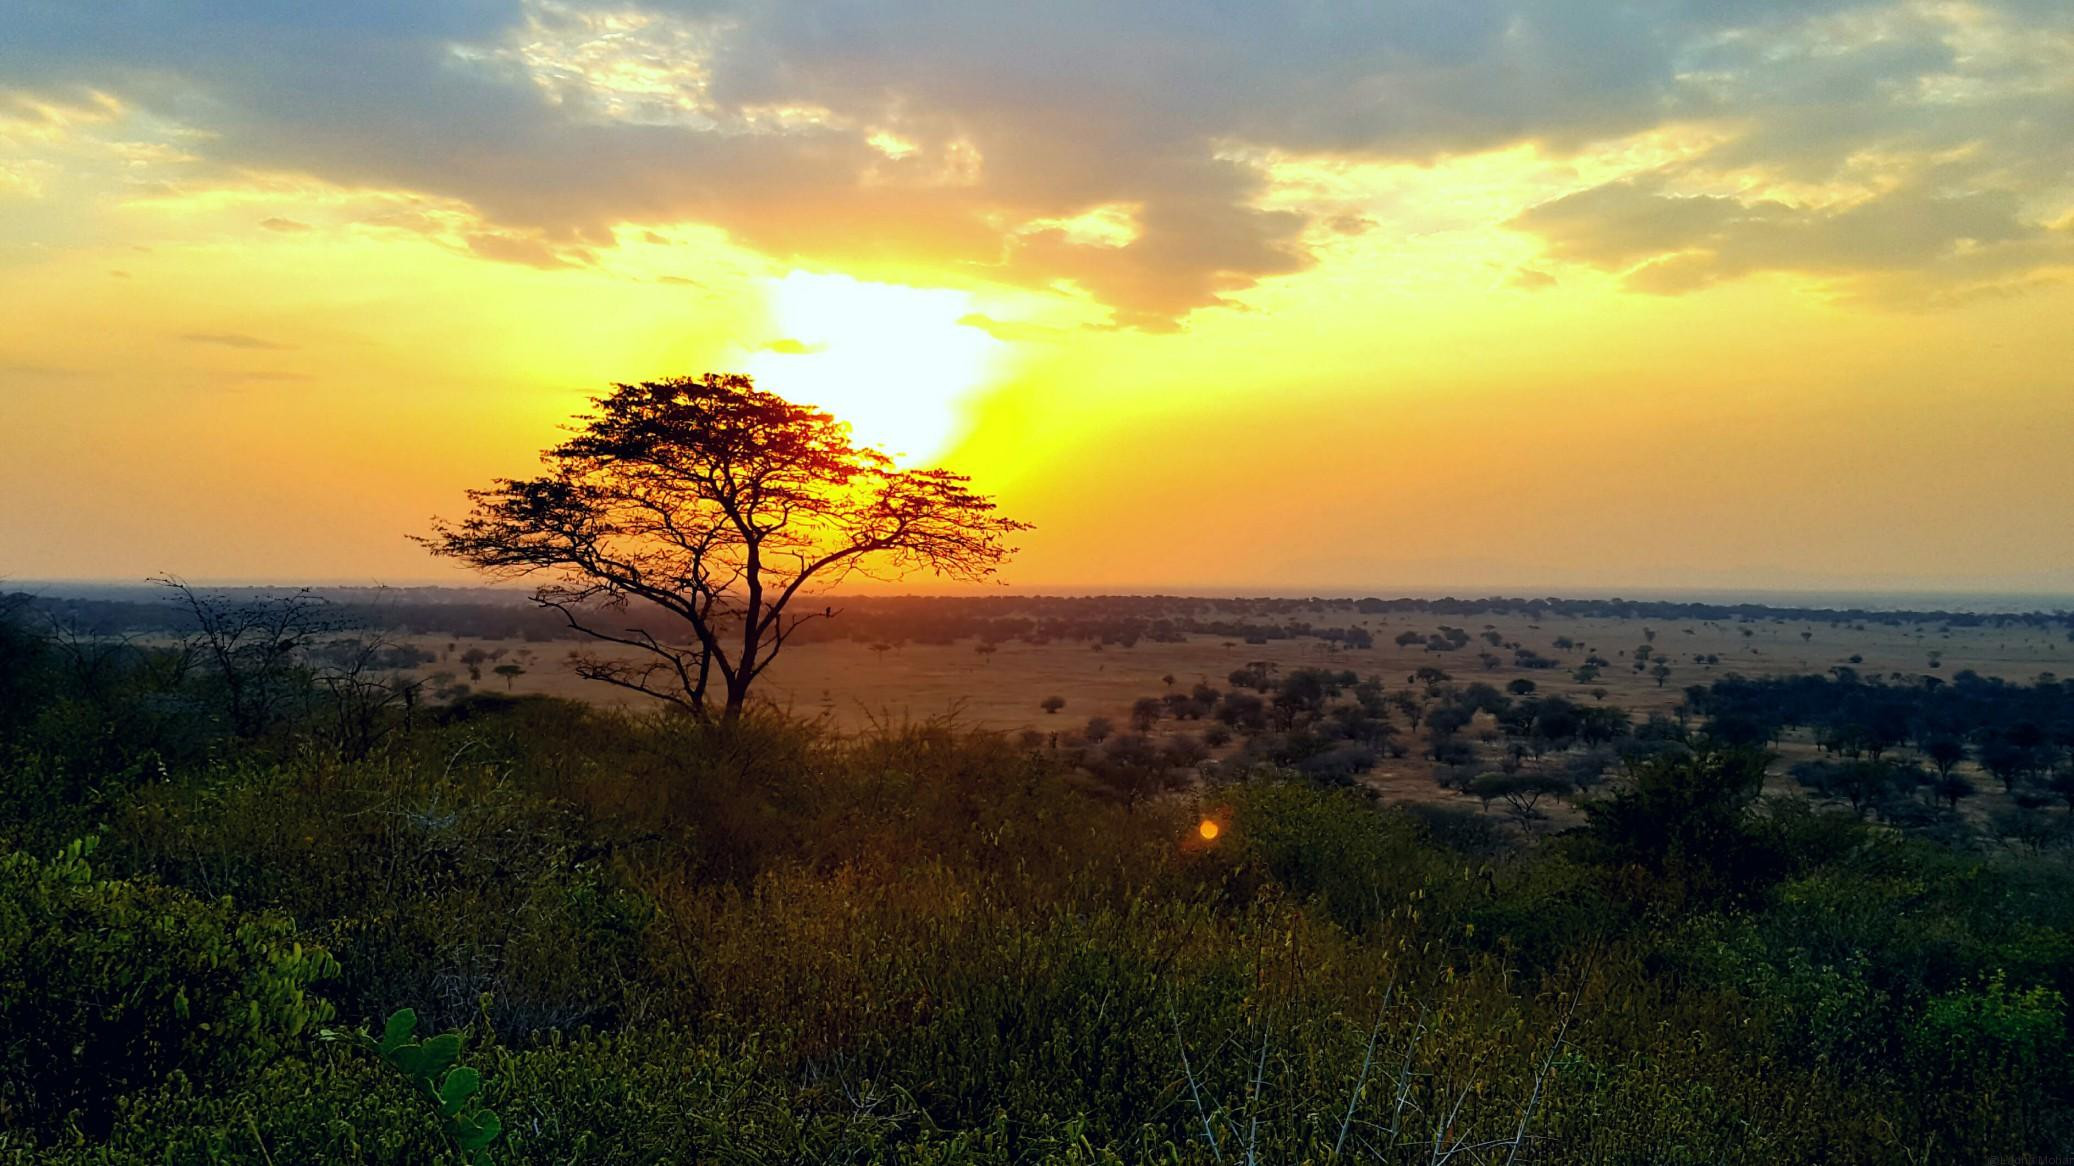 Sunset in Serengeti - Spot the firefly in the picture.